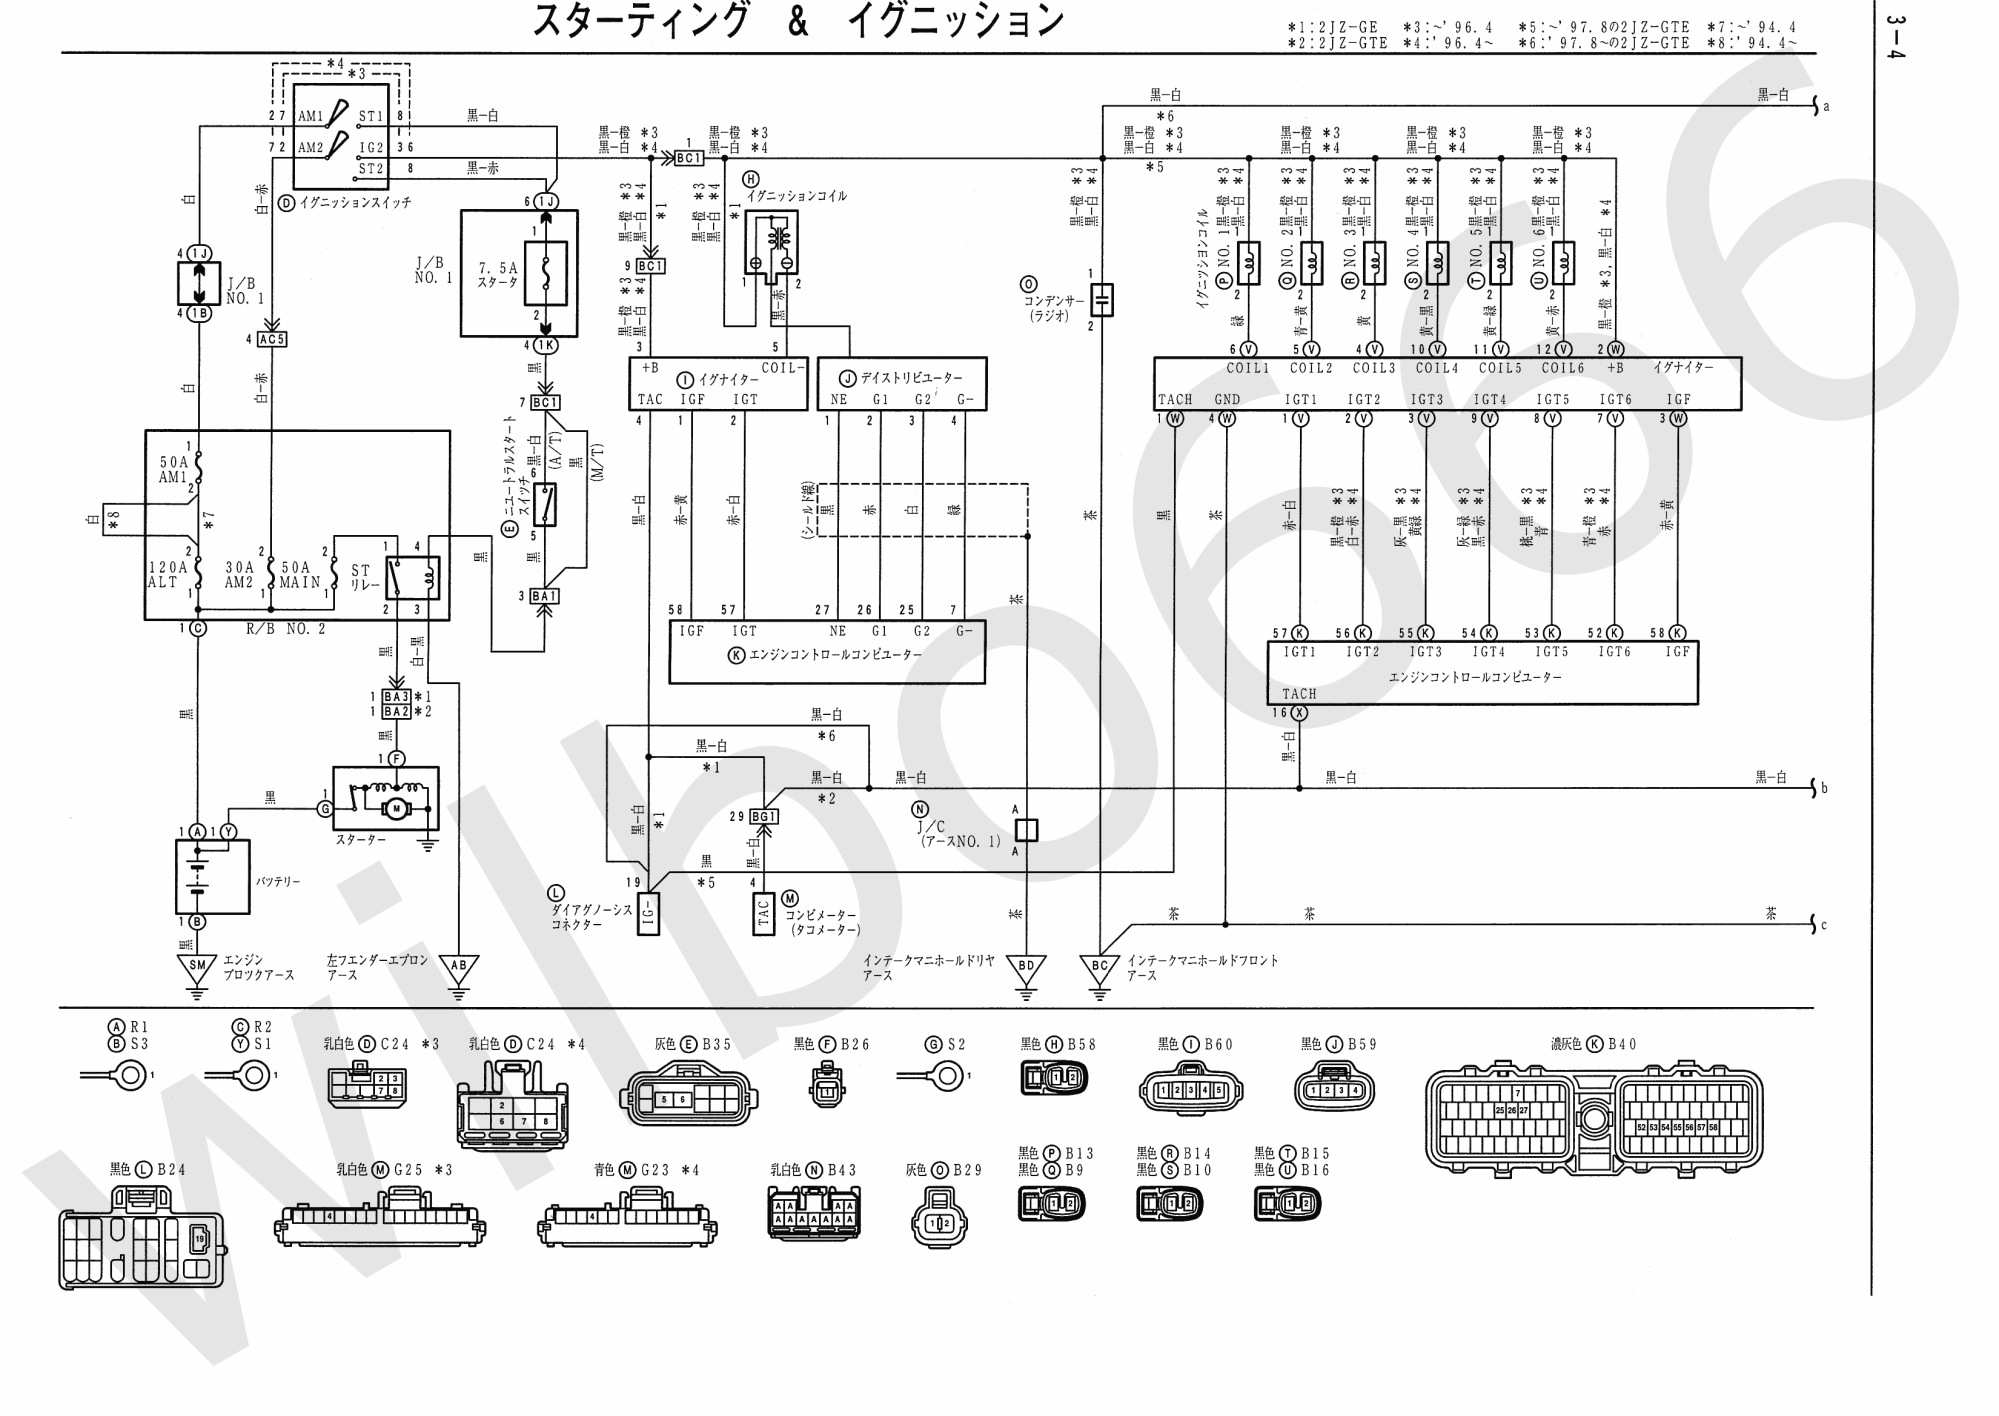 hight resolution of 1jz harness wire diagram wiring library wire harness diagram for 2003 hyundai santa fe 1jz harness wire diagram